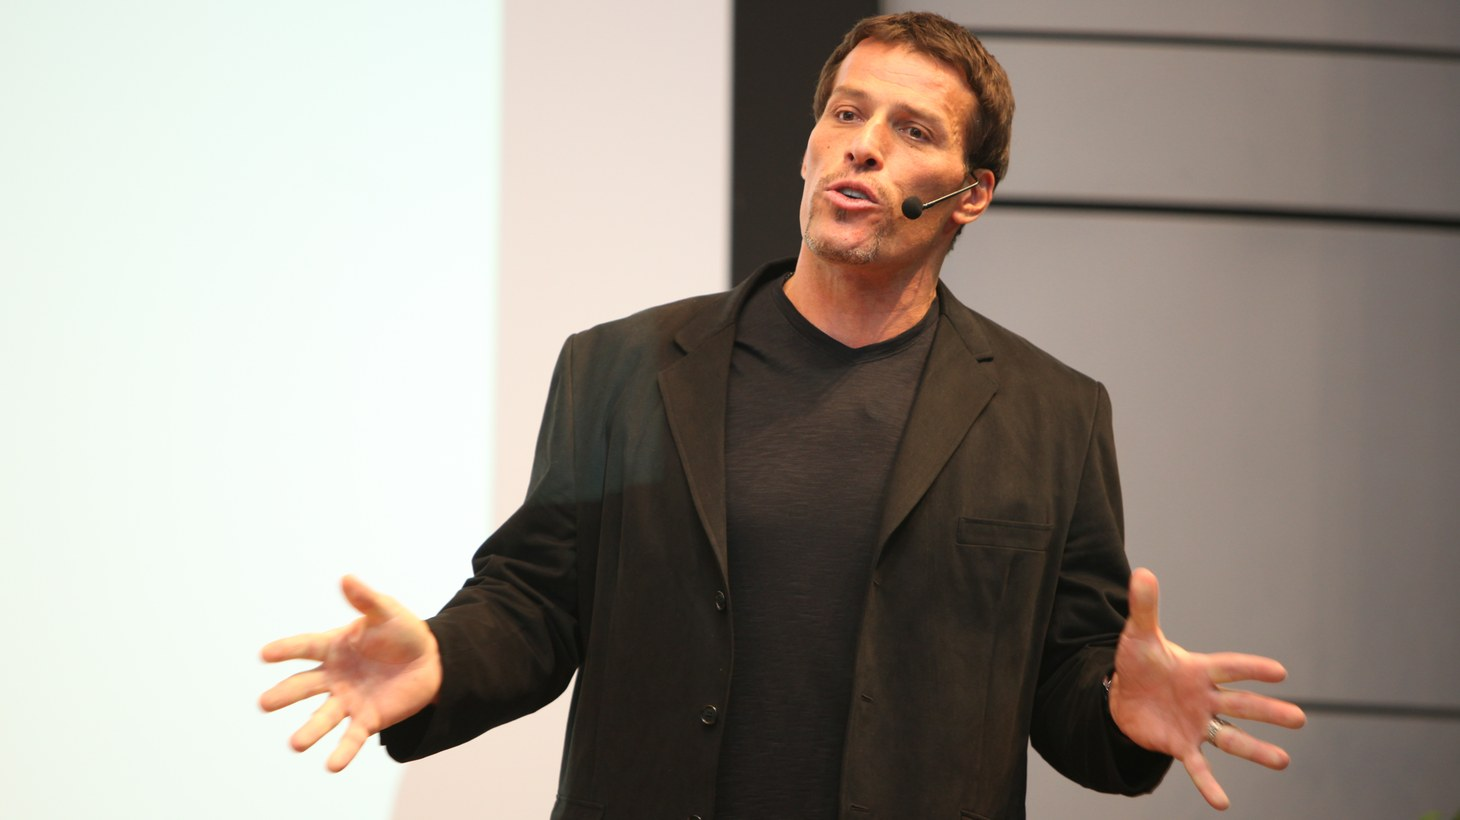 Tony Robbins speaking at The Twitter Conference.